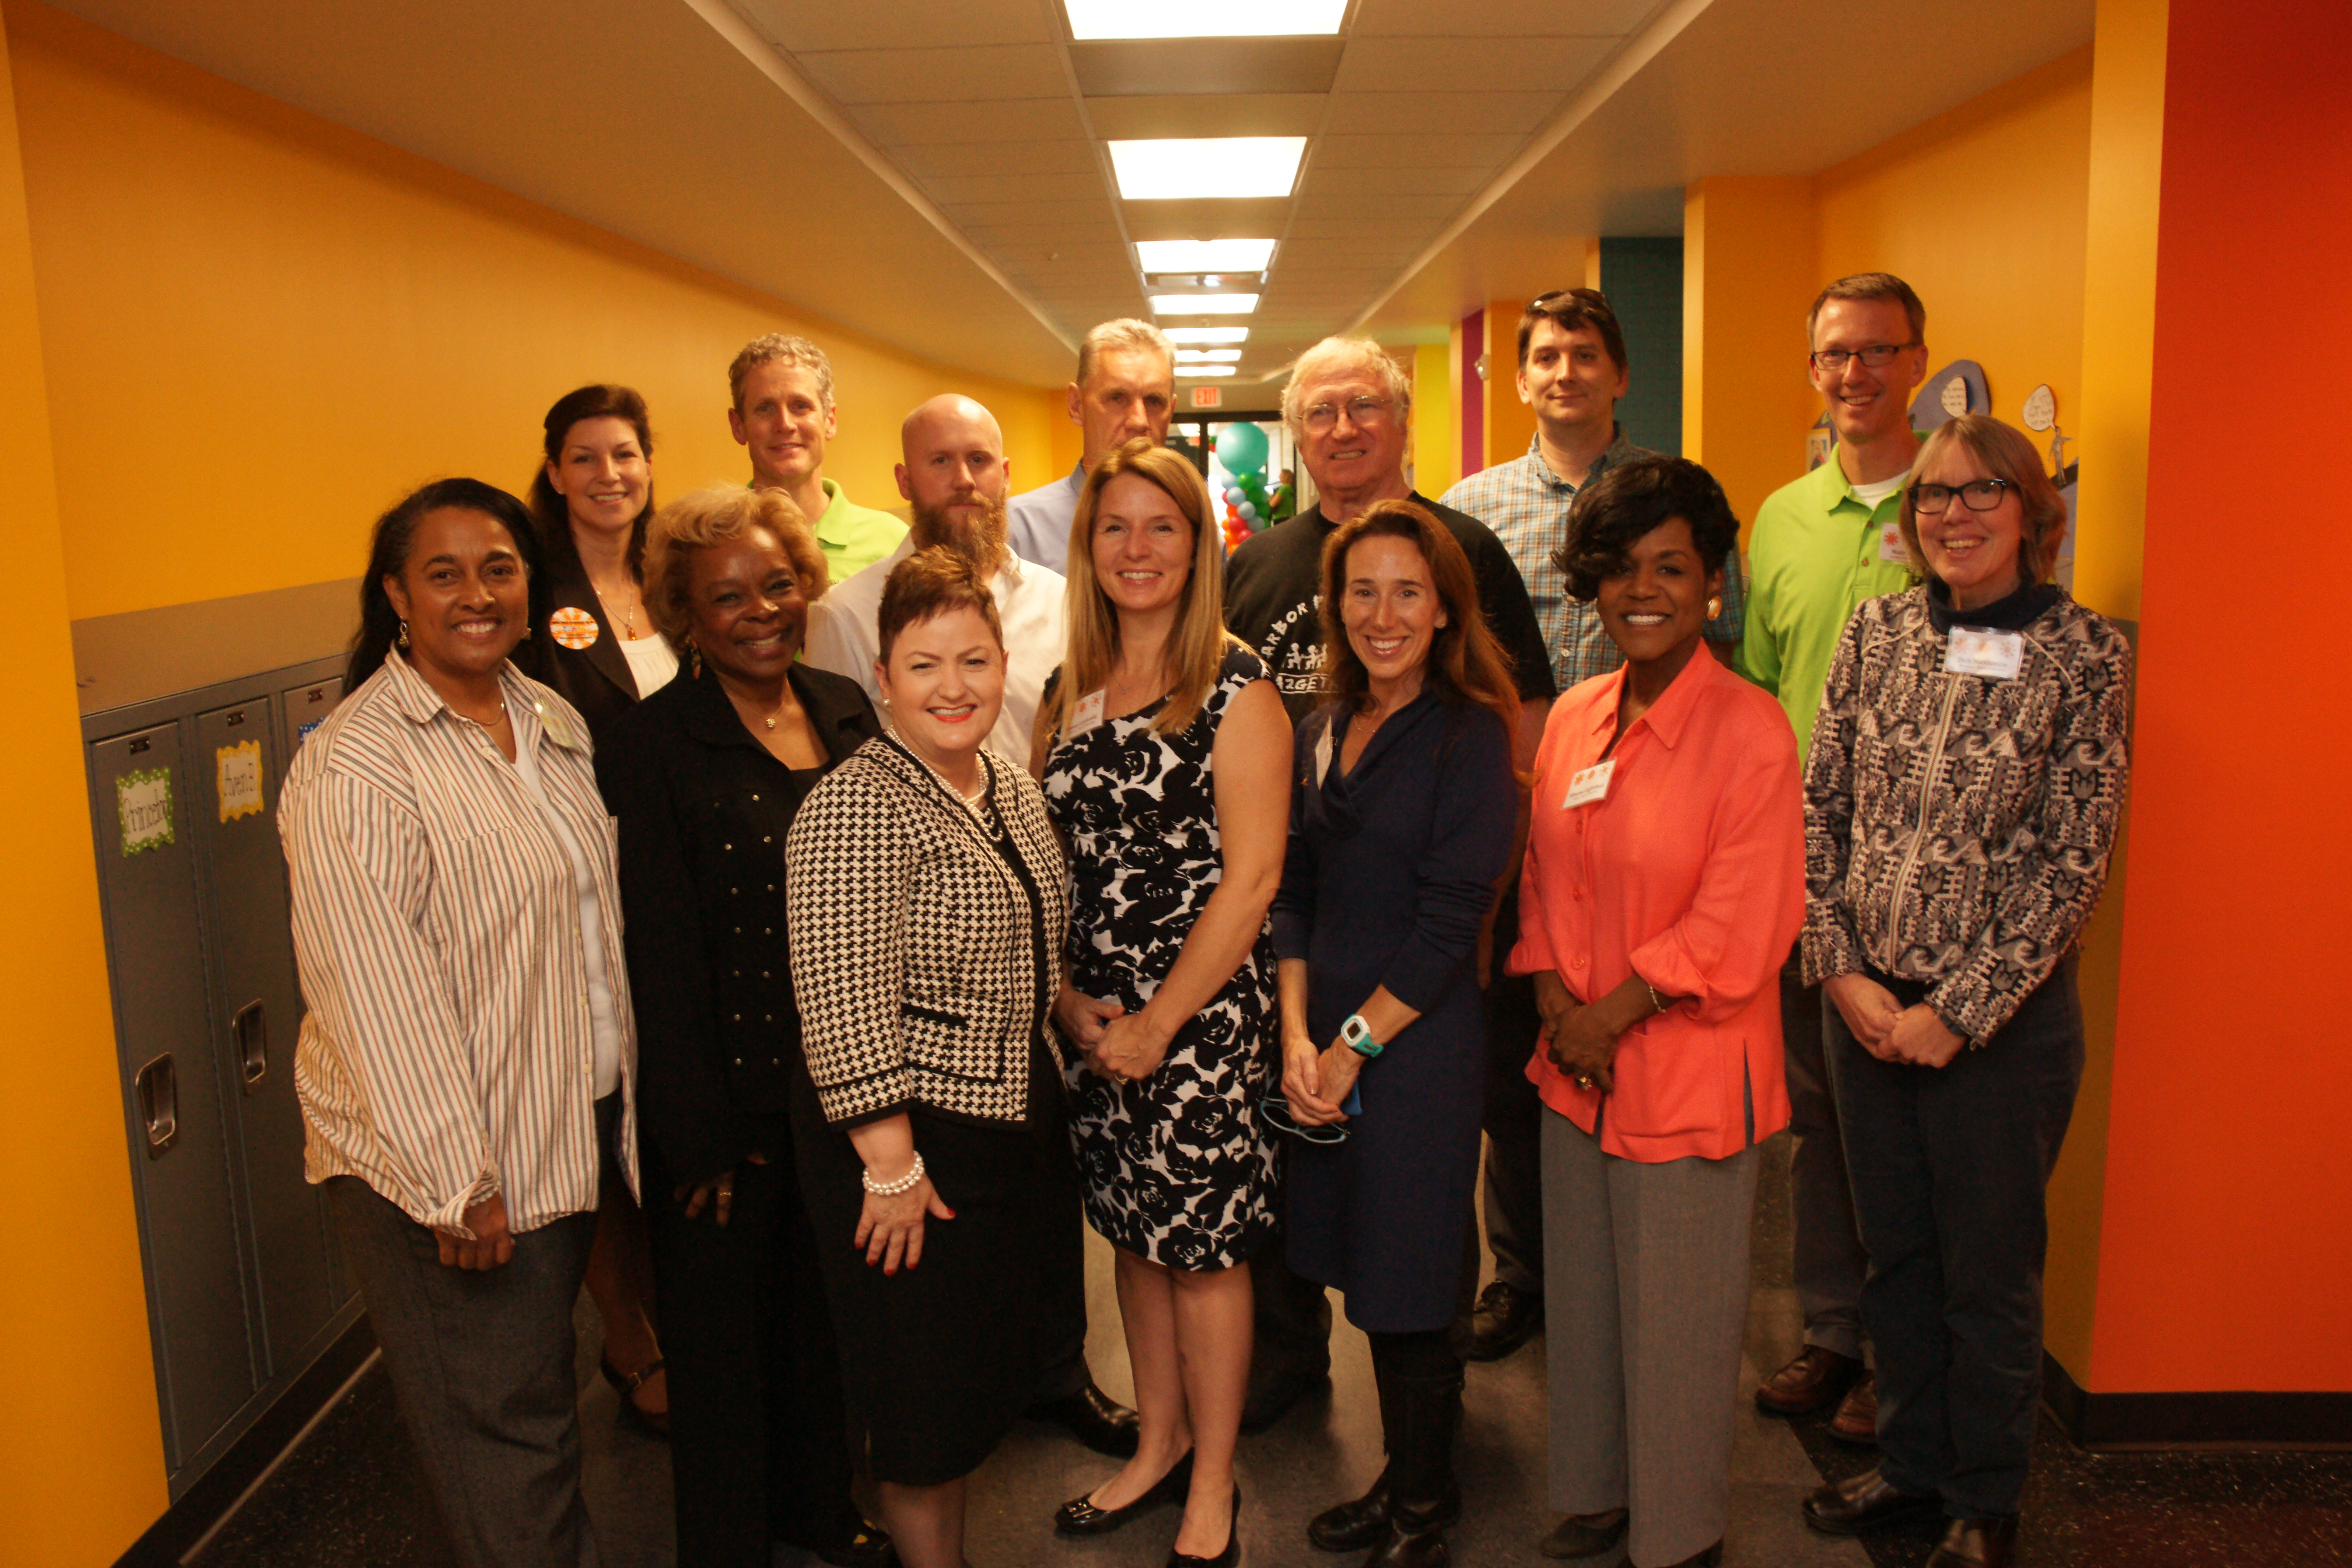 The AAPS school board and others standing in a bright hallway that's the expansion of Mitchell Elementary